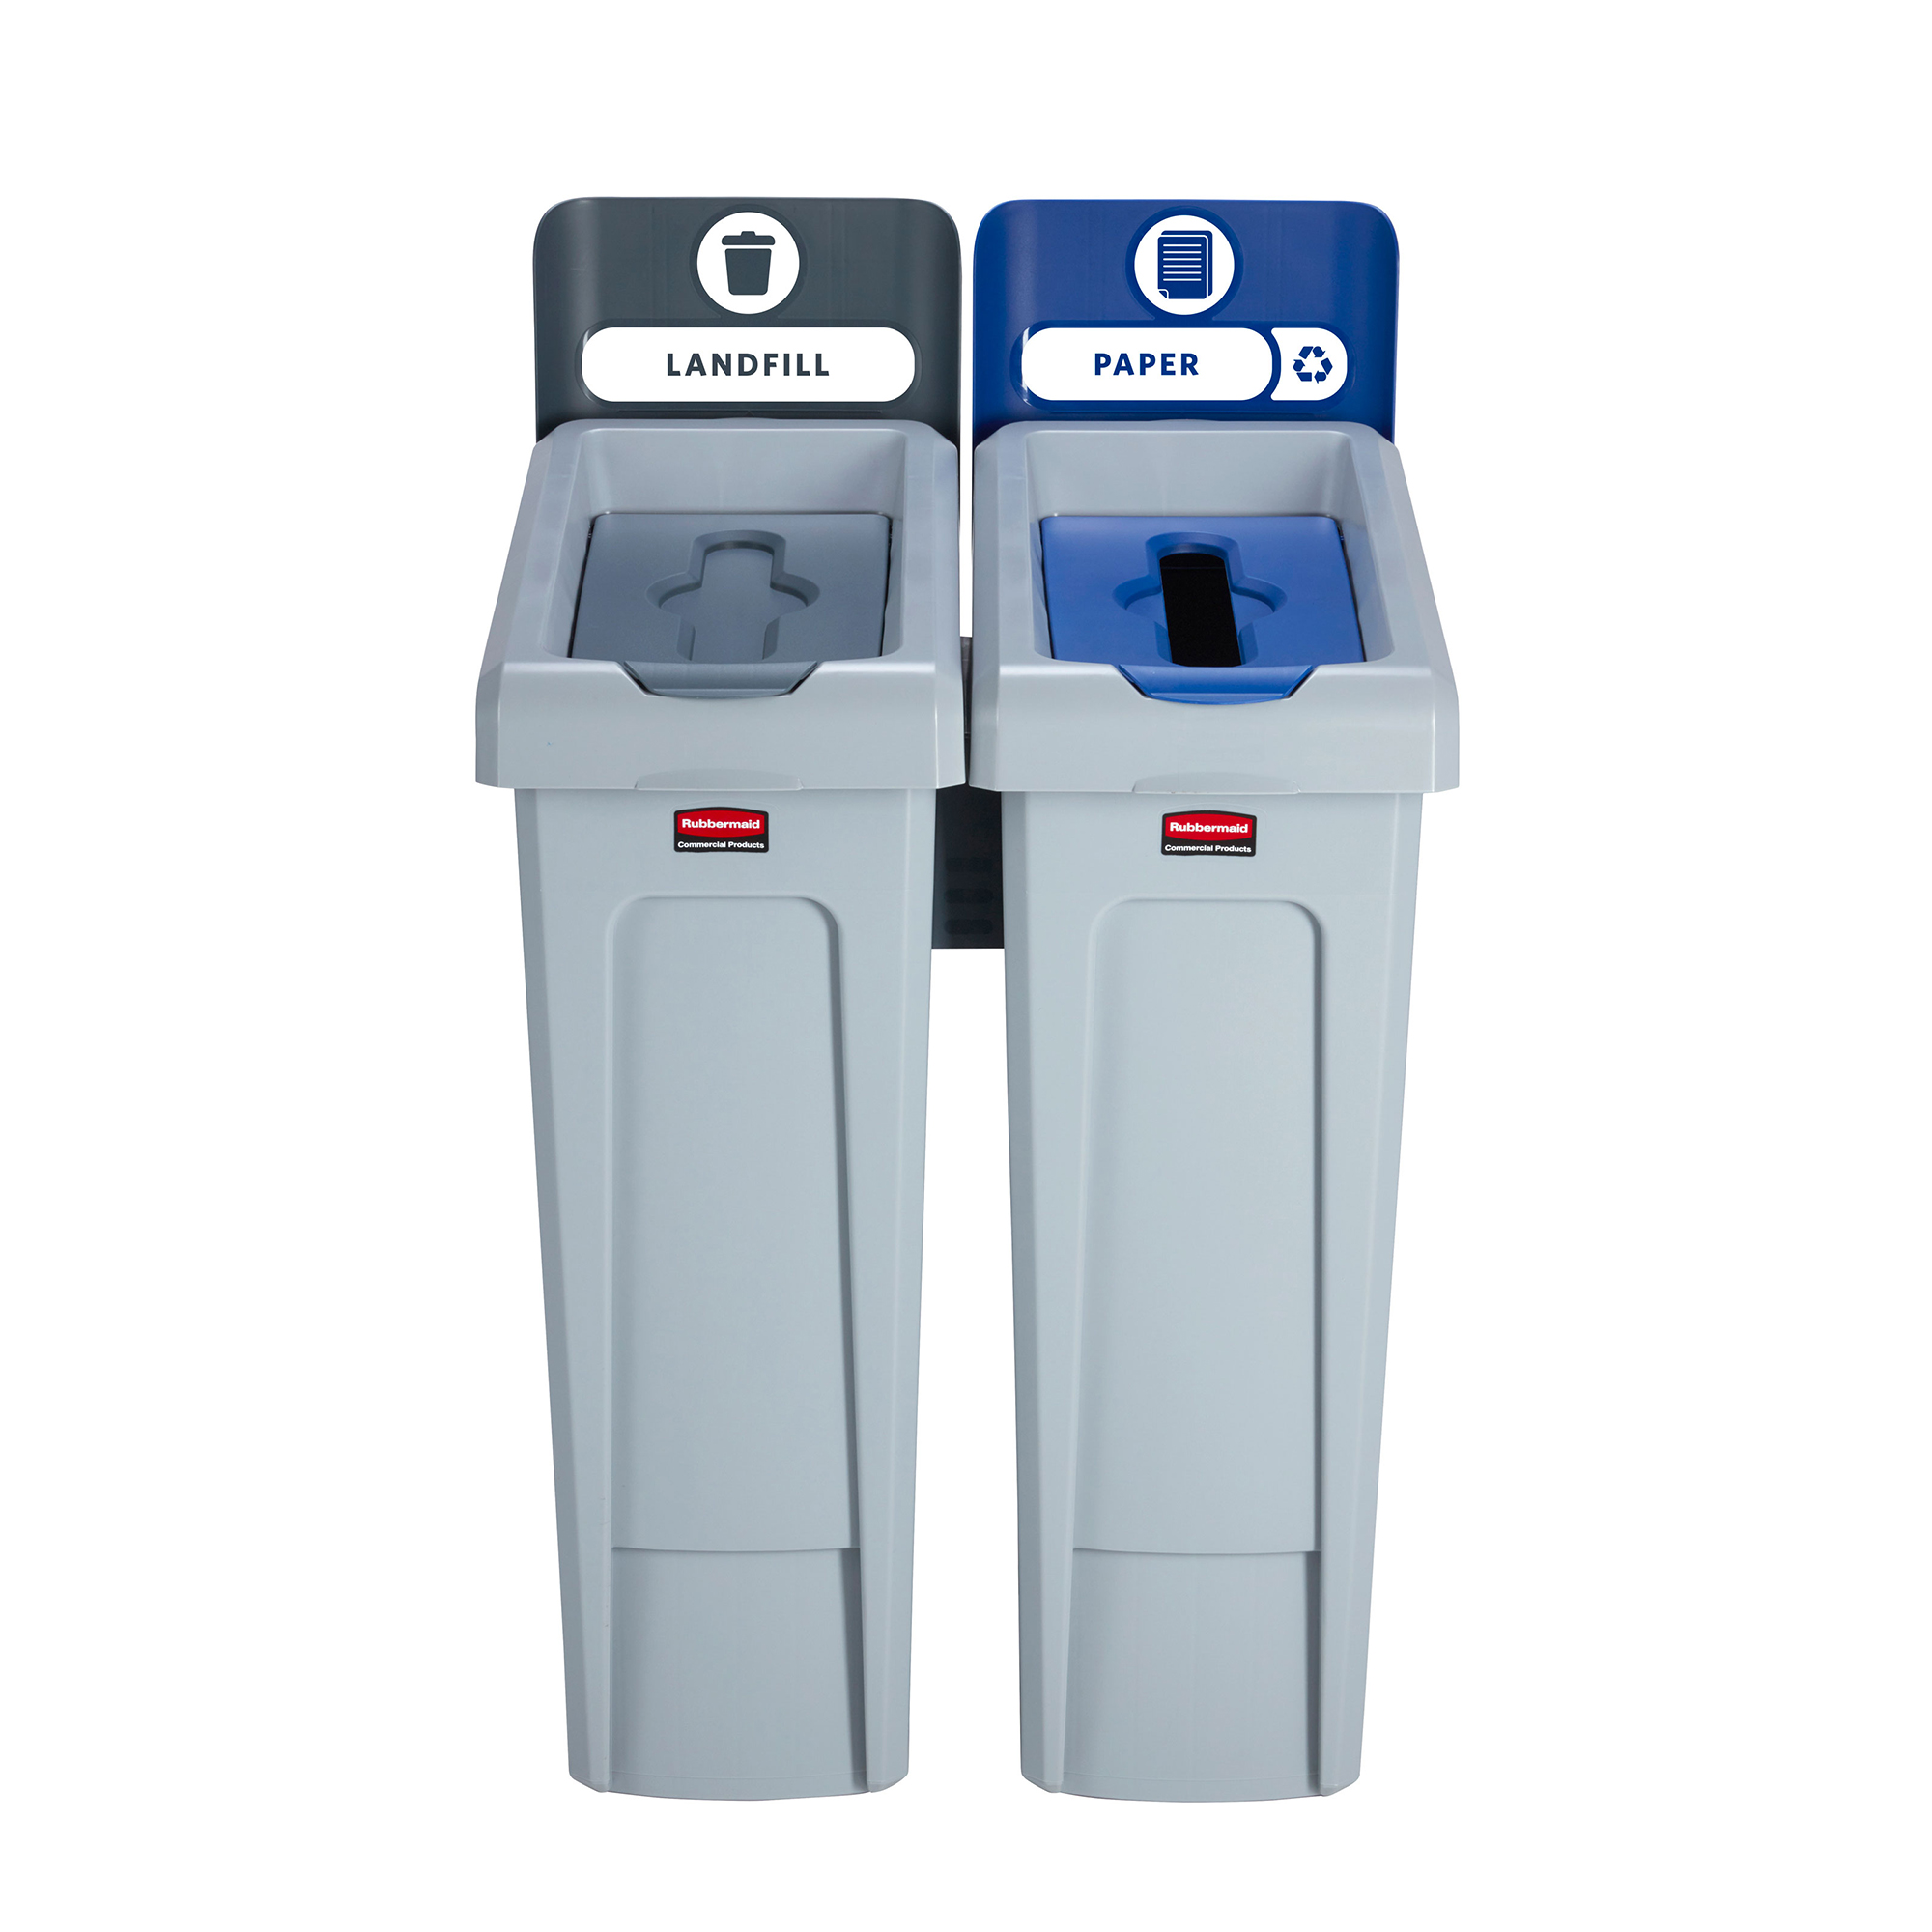 Recycling Bins Slim Jim Recycling Station 2 Stream 609x546x1022mm Ref 2057610